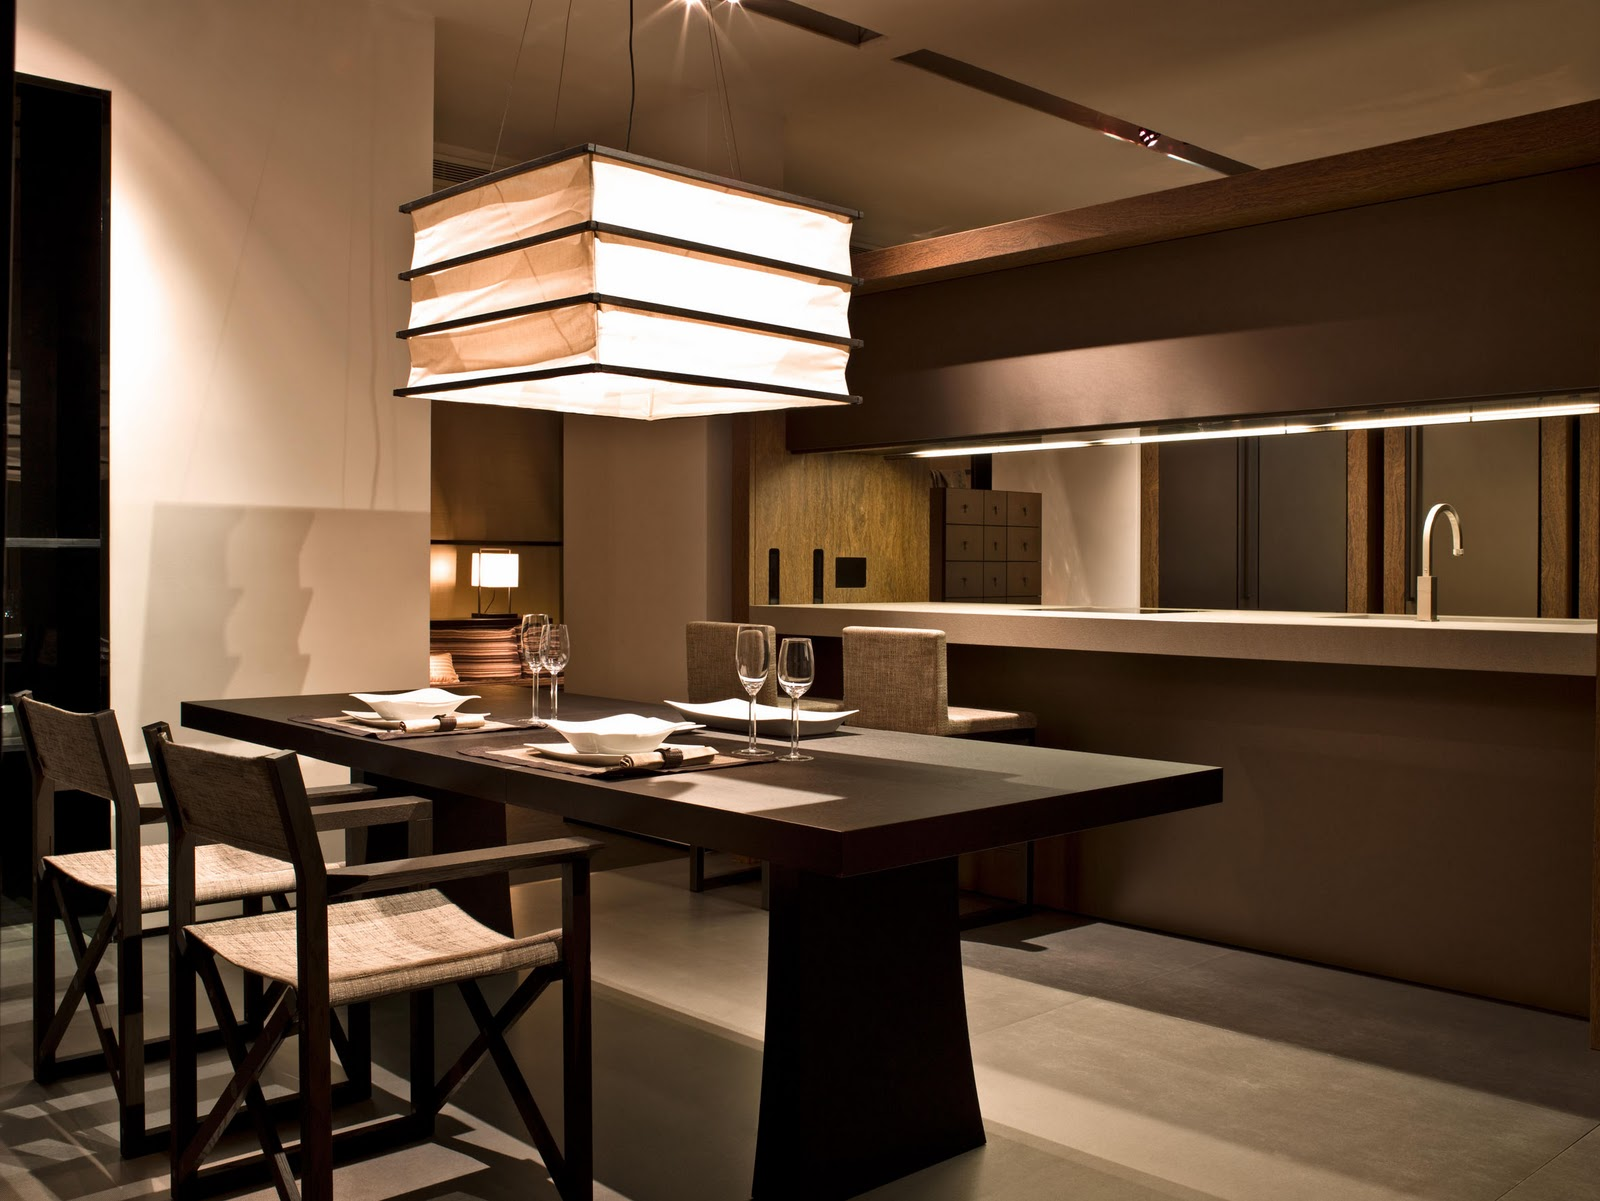 Light color design armani casa for Arredamento armani